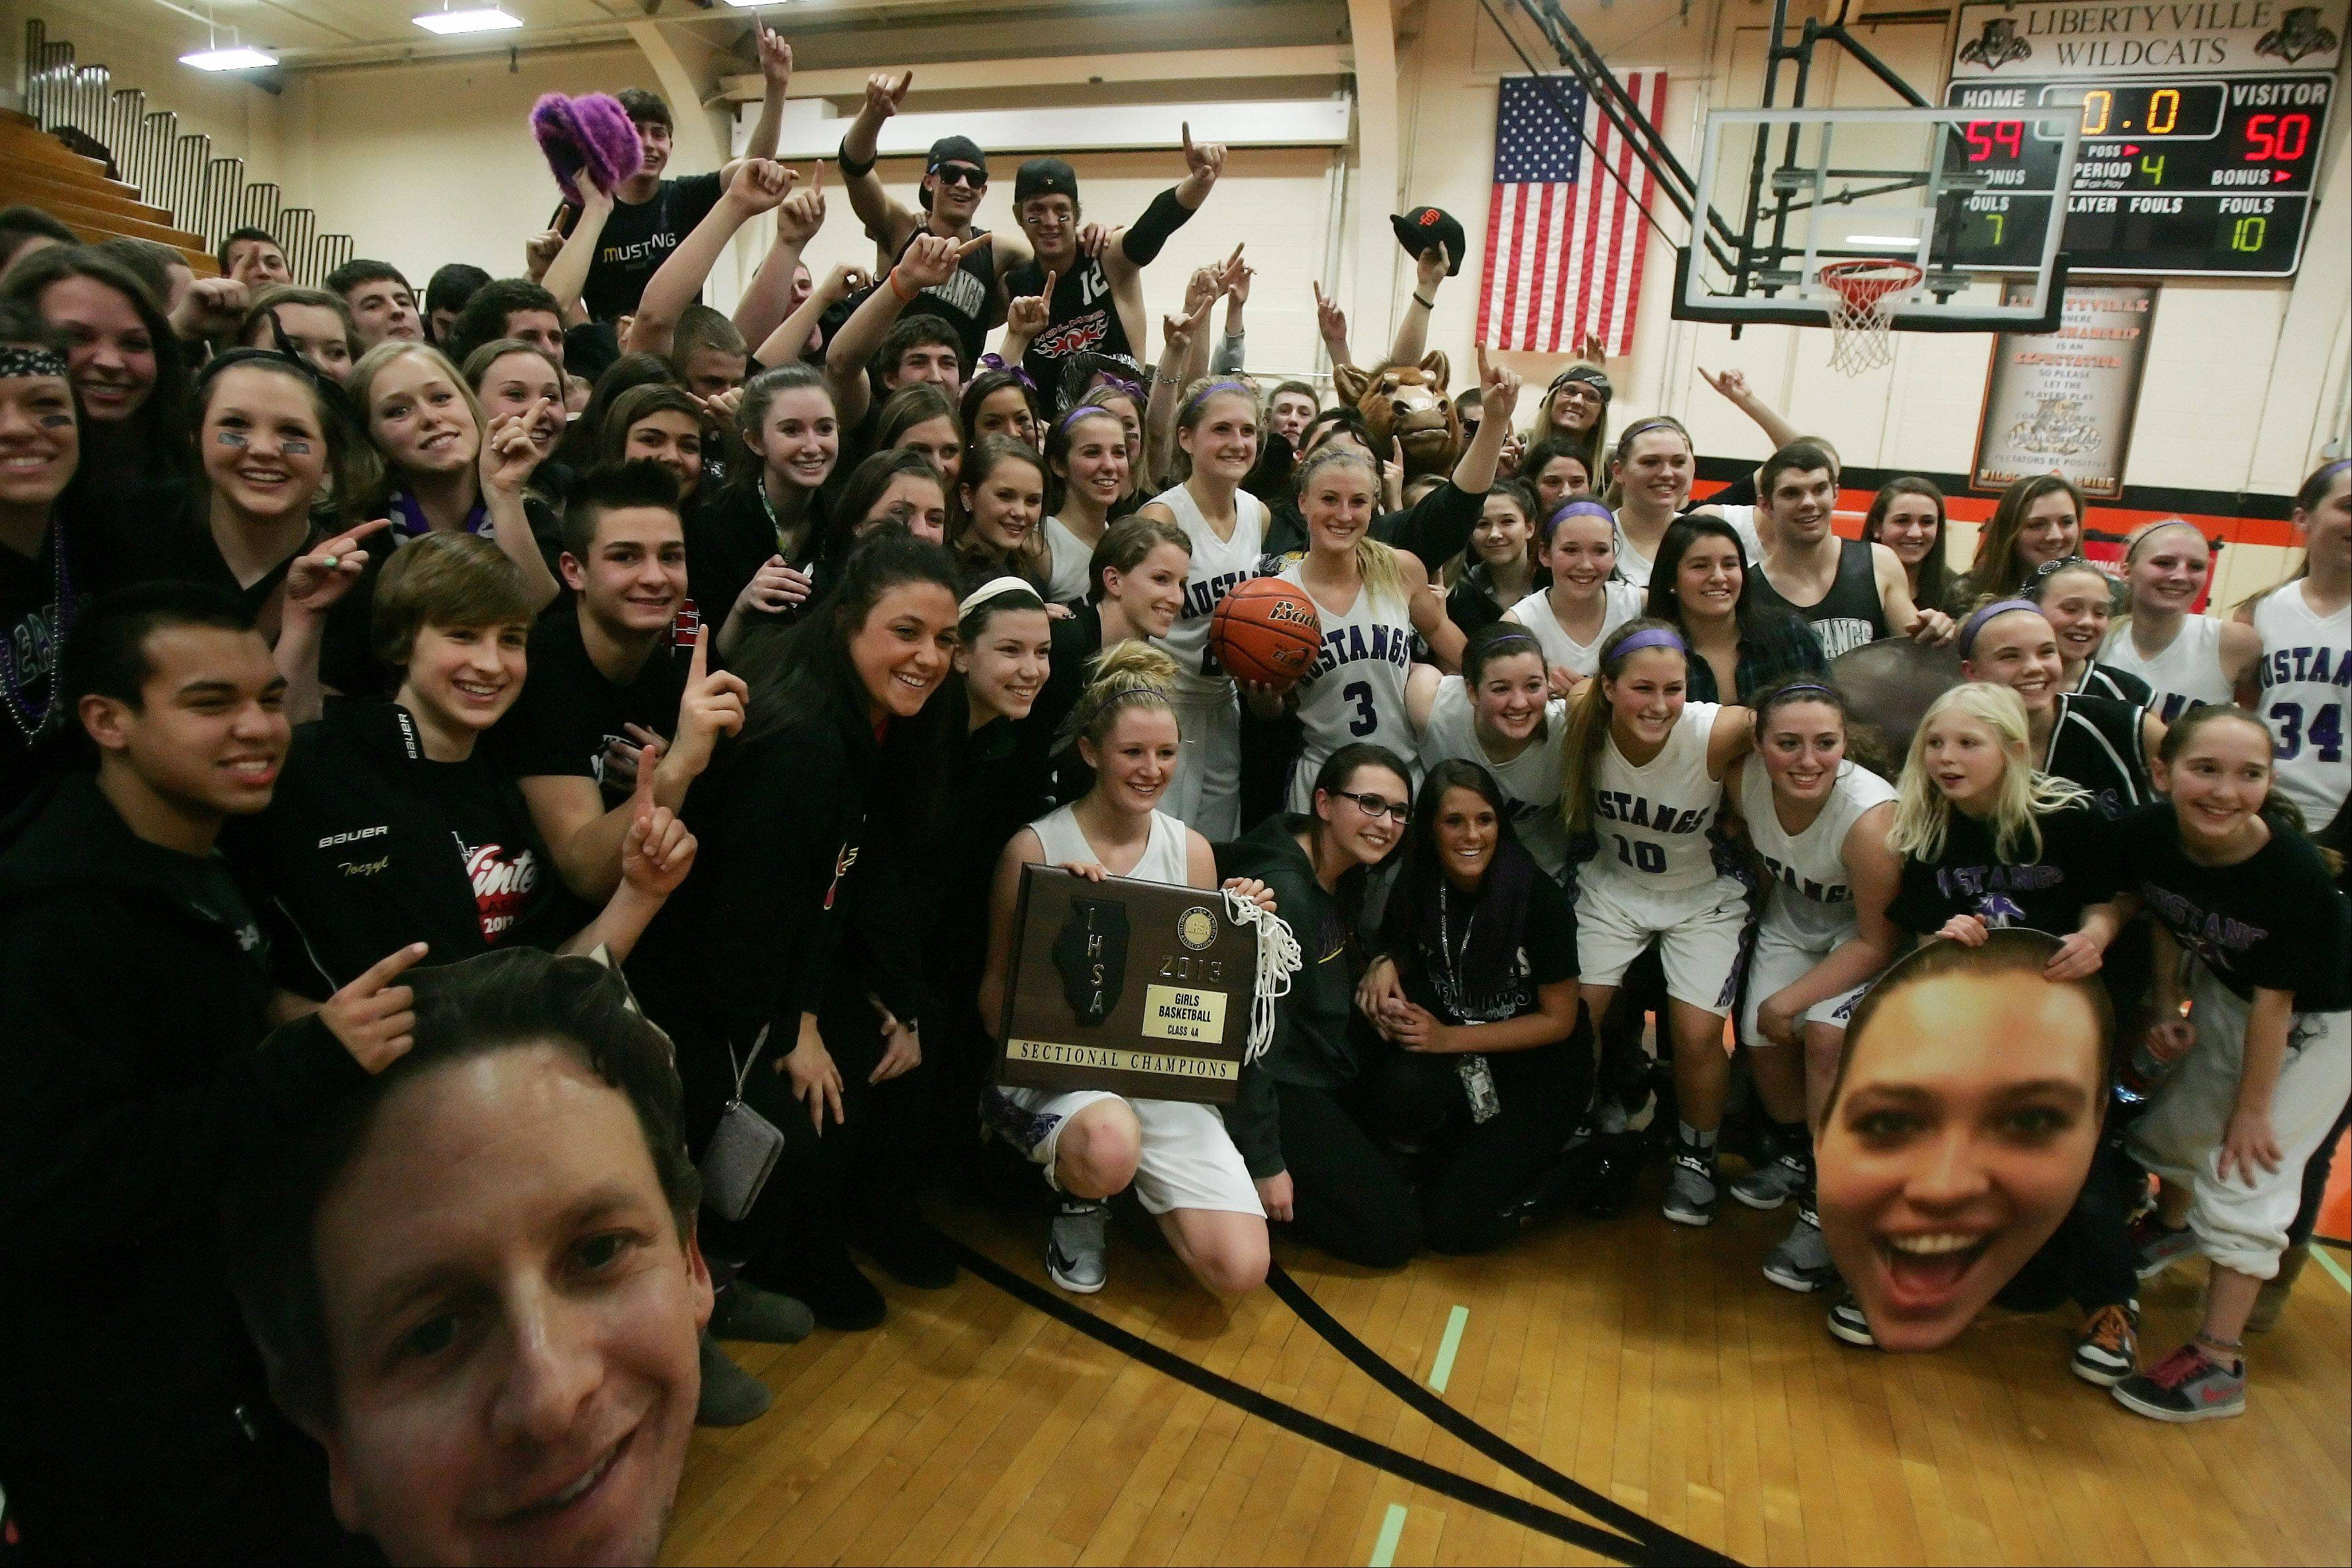 The Rolling Meadows girls basketball team celebrates after winning the sectional final on Feb. 21 in Libertyville. The team will play in the state tournament Friday night.